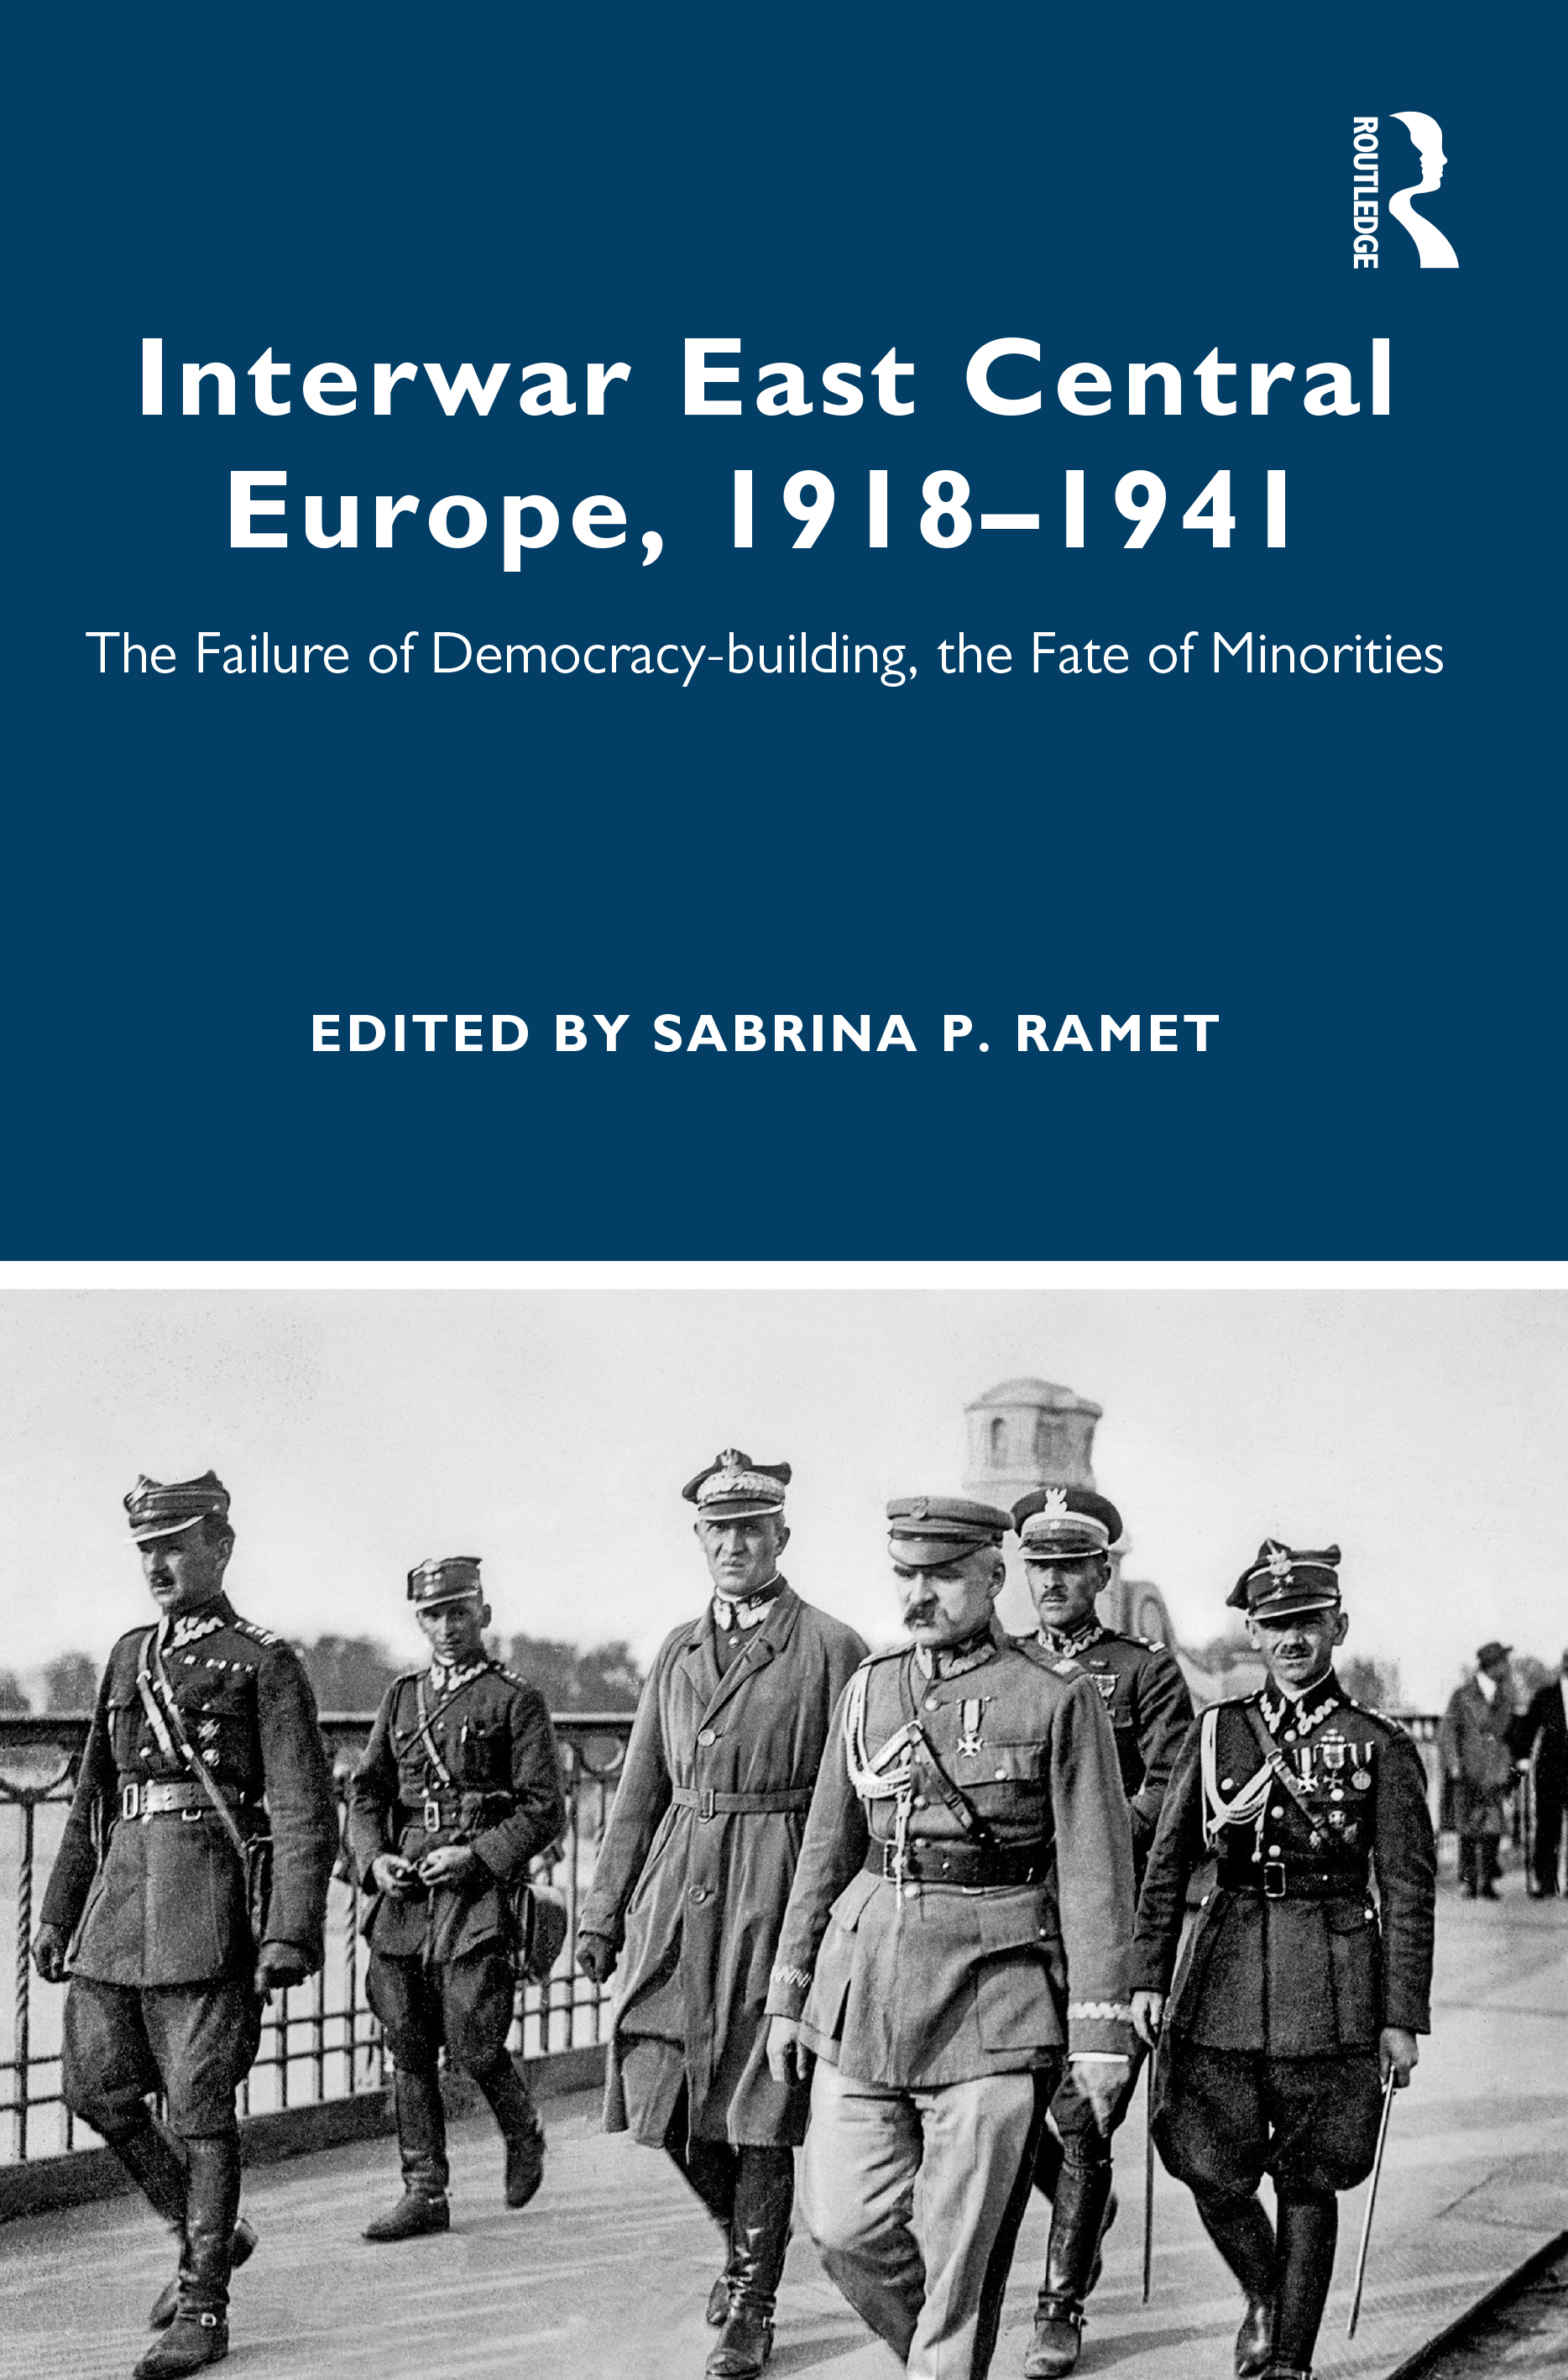 Interwar East Central Europe, 1918-1941: The Failure of Democracy-building, the Fate of Minorities, 1st Edition (Paperback) book cover